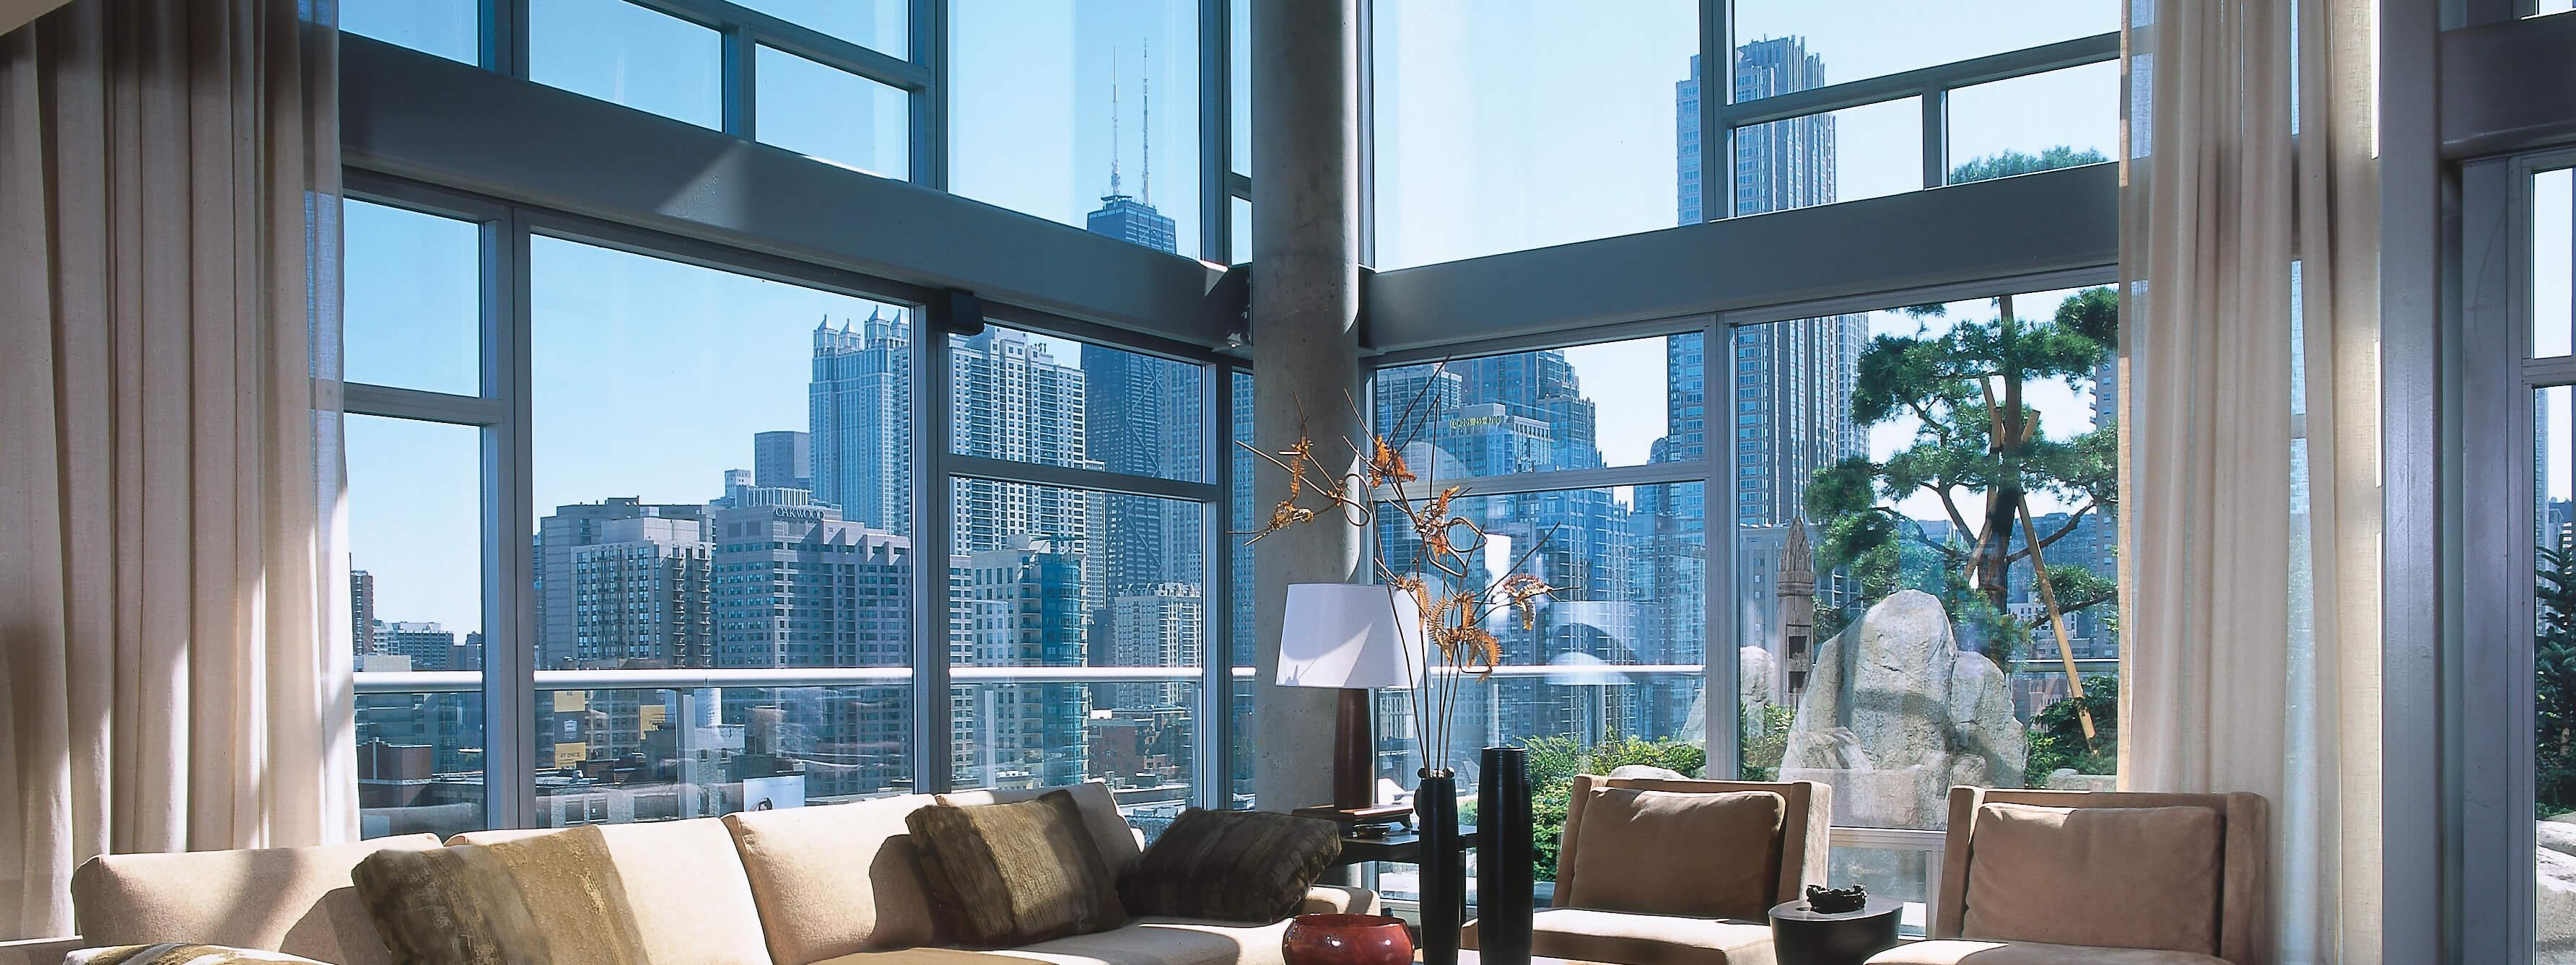 marina chicago architecture buildings views history cheap first circular in the bedroom city marinatowers apartments virginiaduran apartment